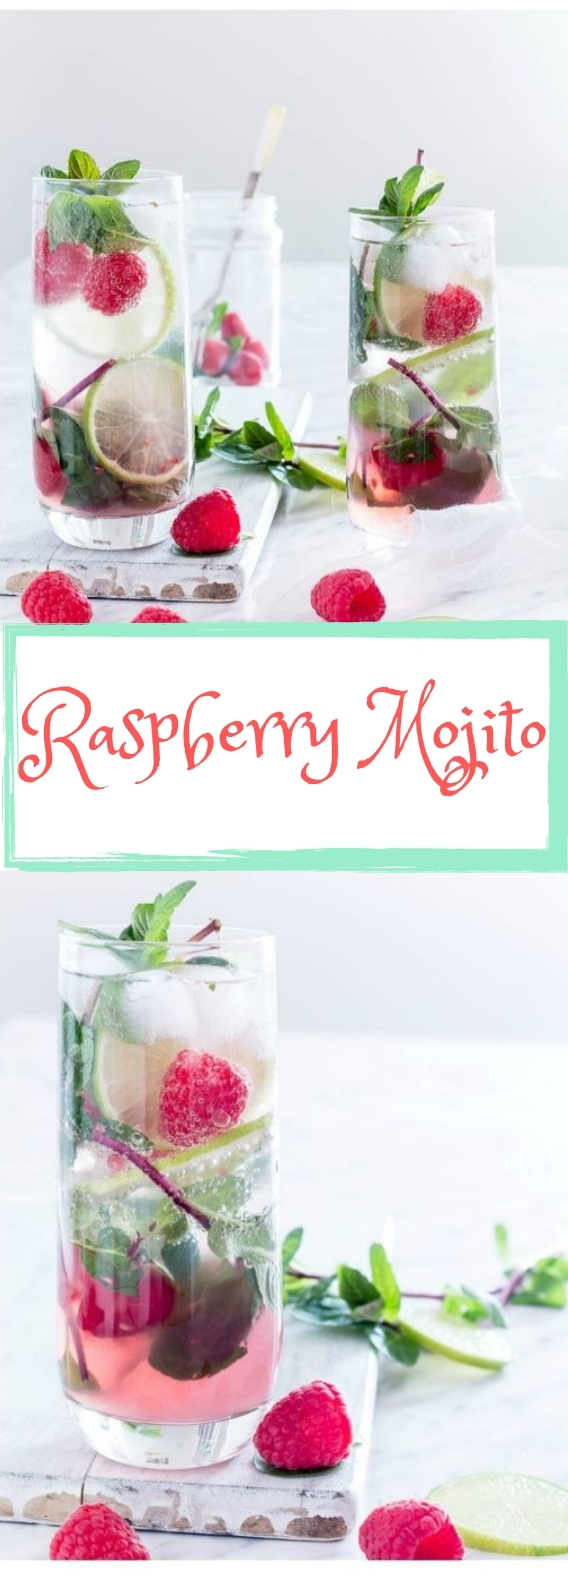 Raspberry Mojito #Freshdrink #Cocktail